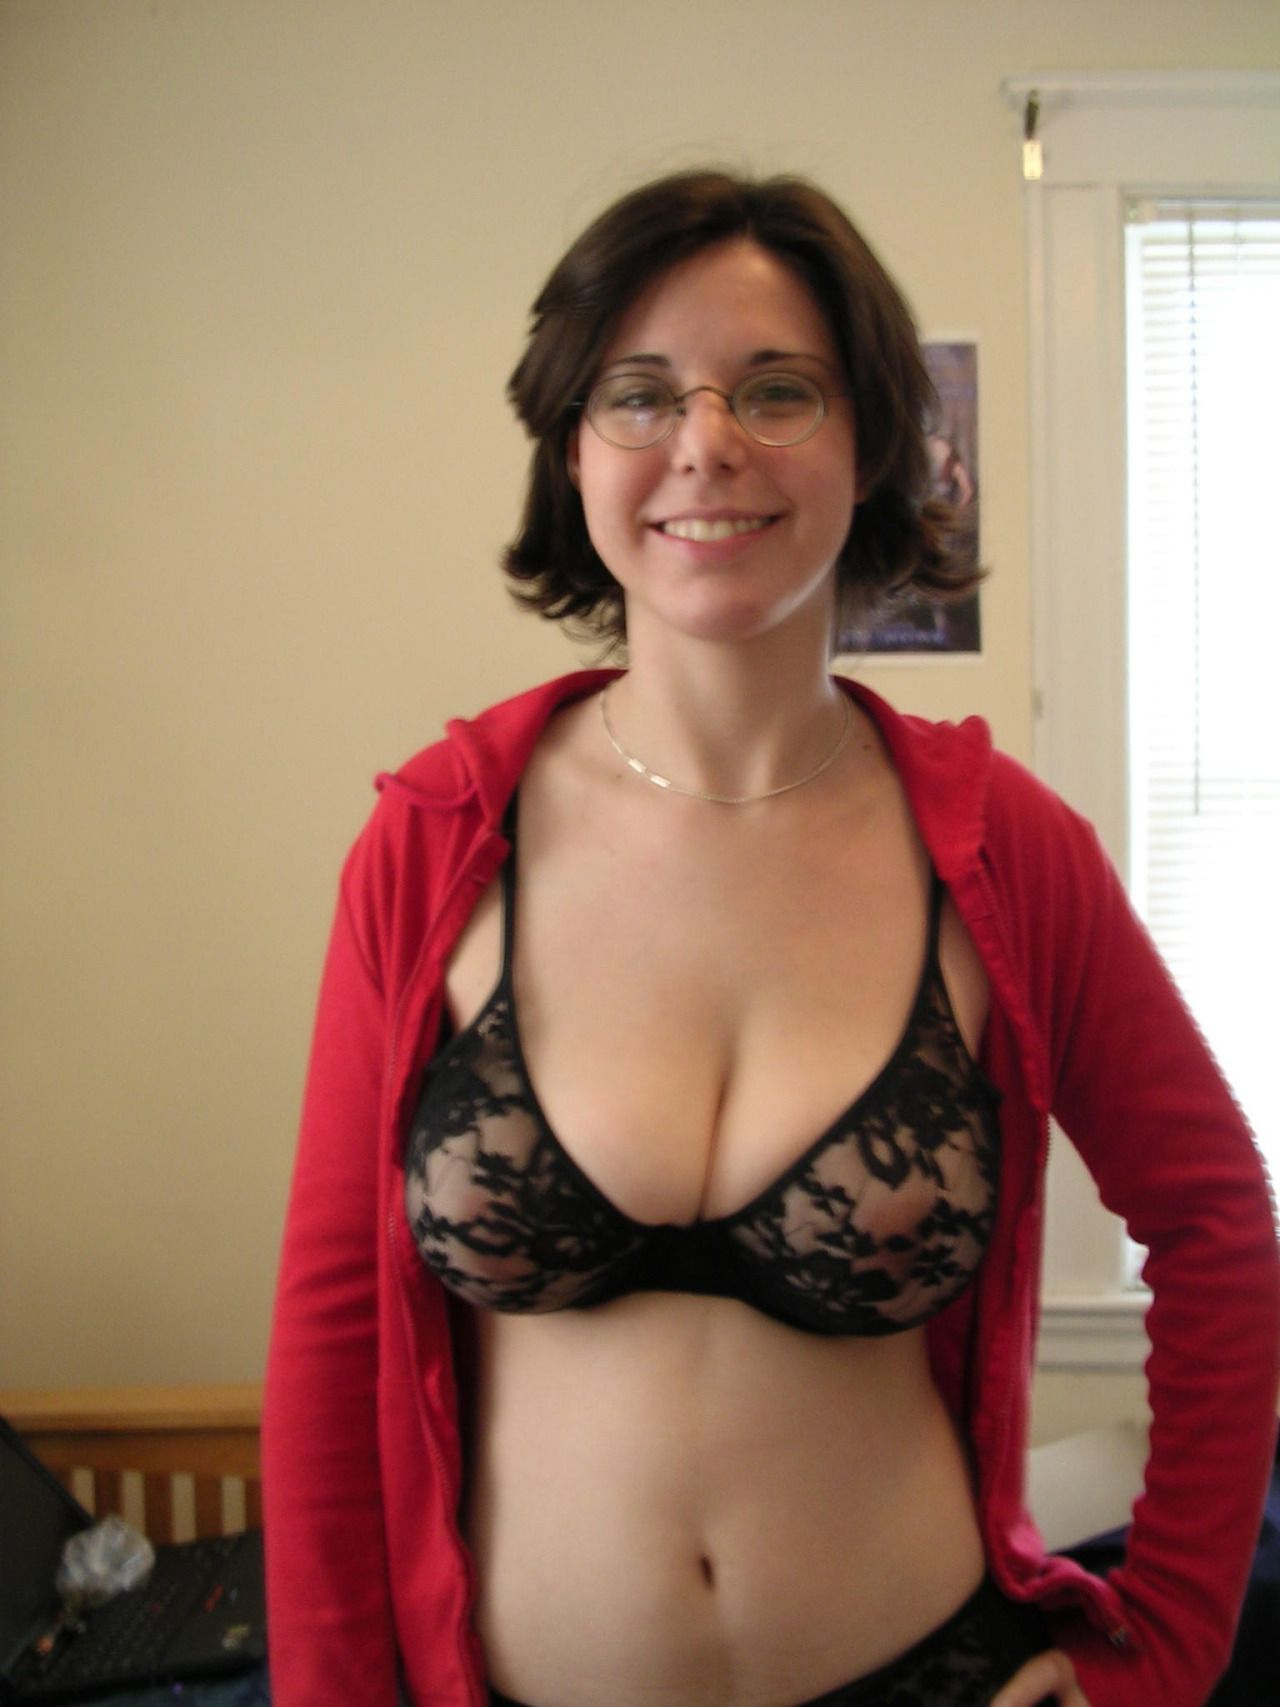 milfs matures & moms : photo | lingerie womens all ages | pinterest